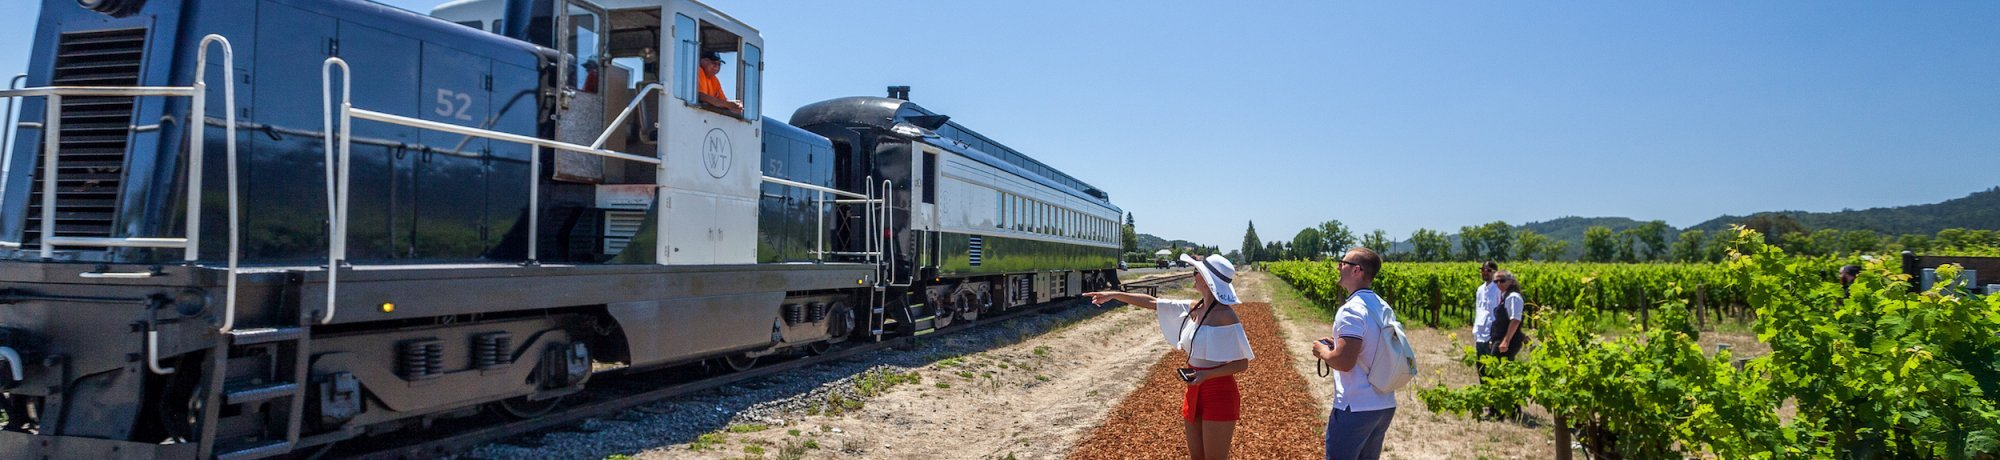 Woman pointing at exterior of Napa Valley Wine Train parked beside vineyard with blue sky overtop